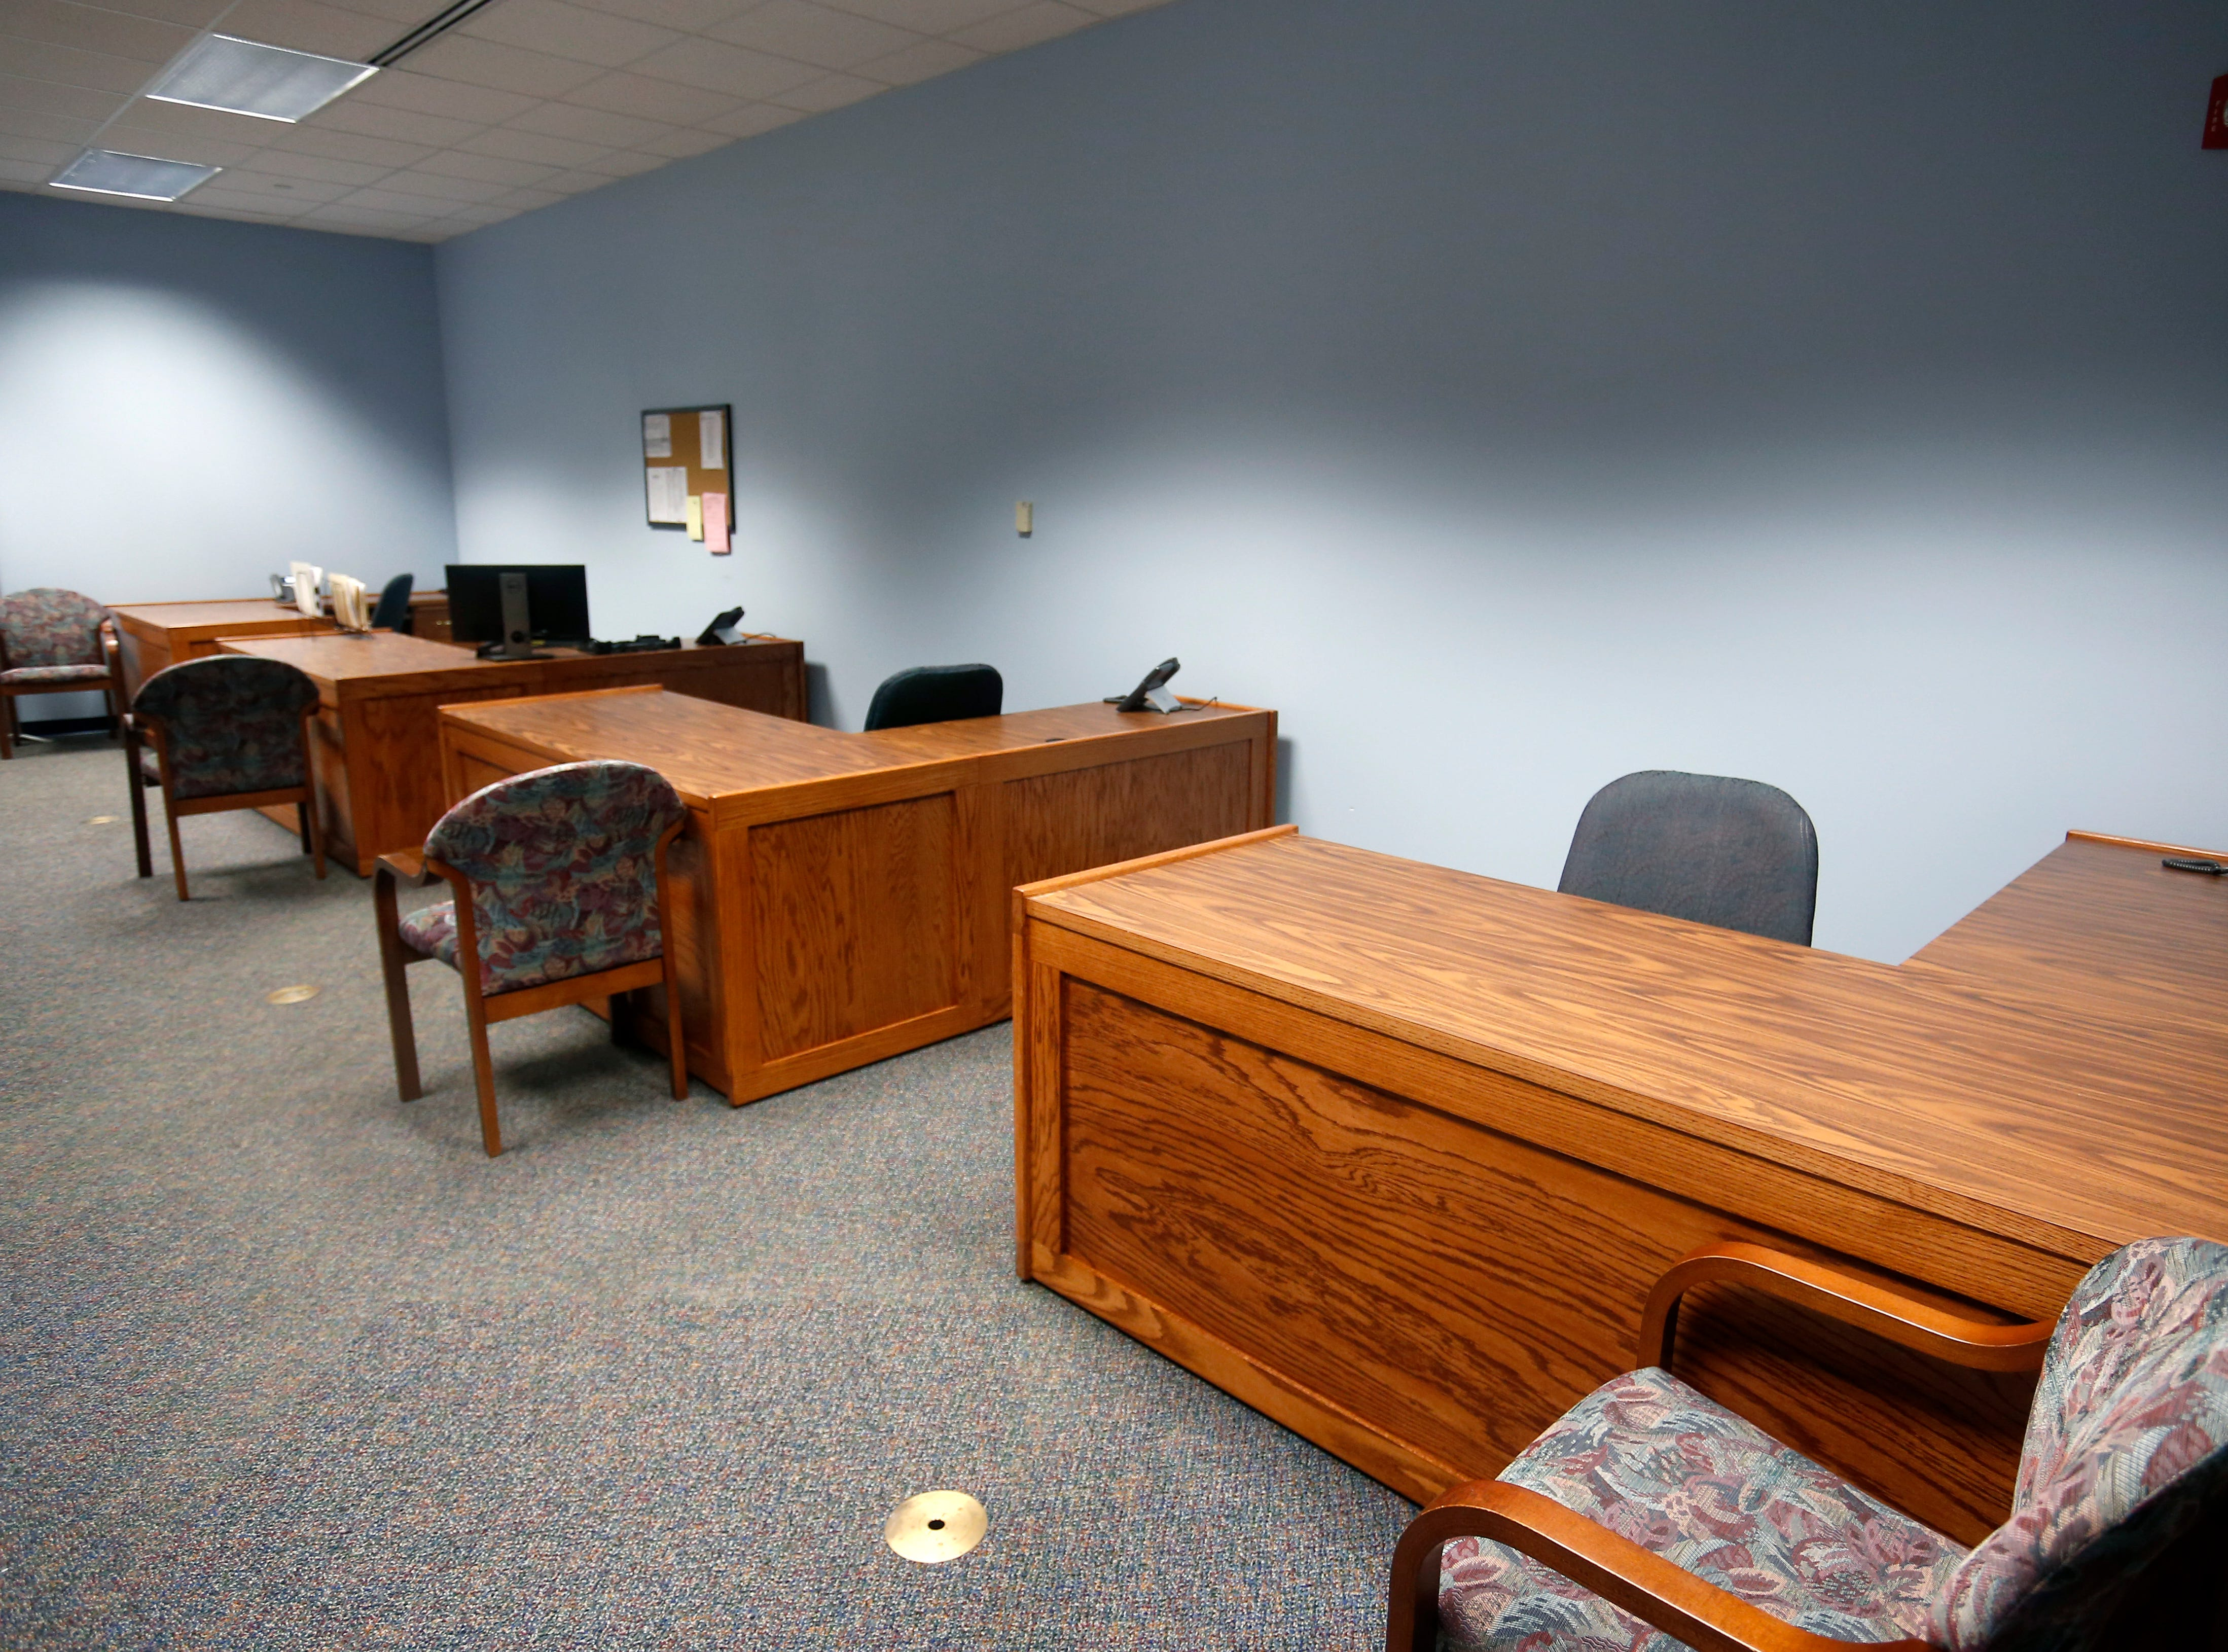 Desks for police and sheriff's department officials at the Family Justice Center located on the second floor of the Greene County Courthouse on Thursday, Aug. 30, 2018.